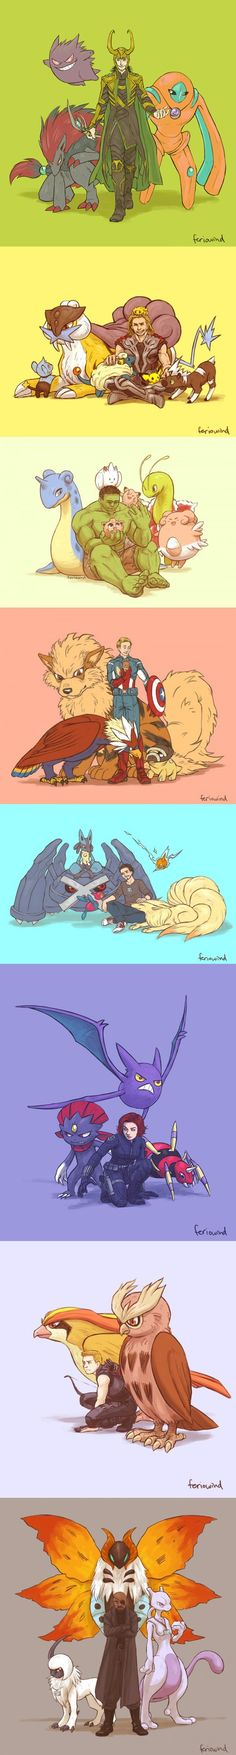 If the Avengers had Pokemon